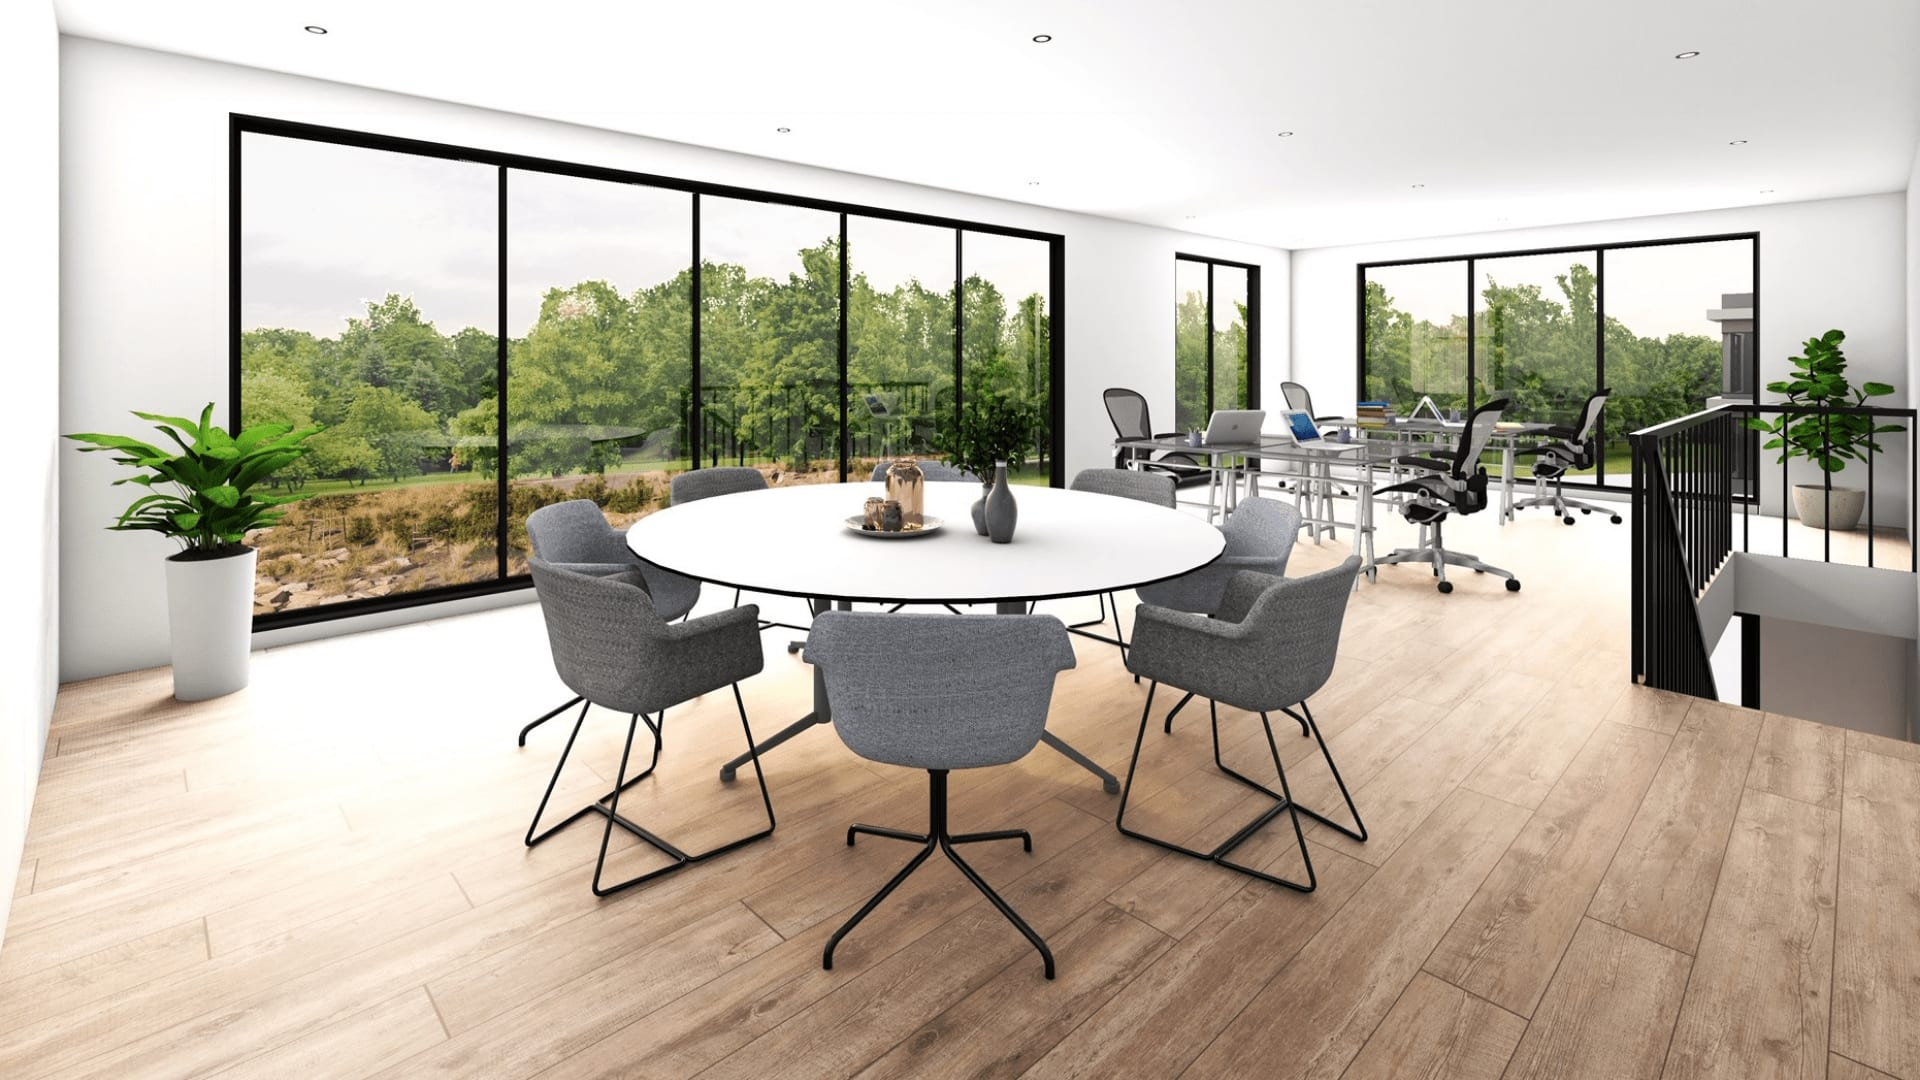 Photorealistic 3d Render of Architecturally Designed Interior Office Area